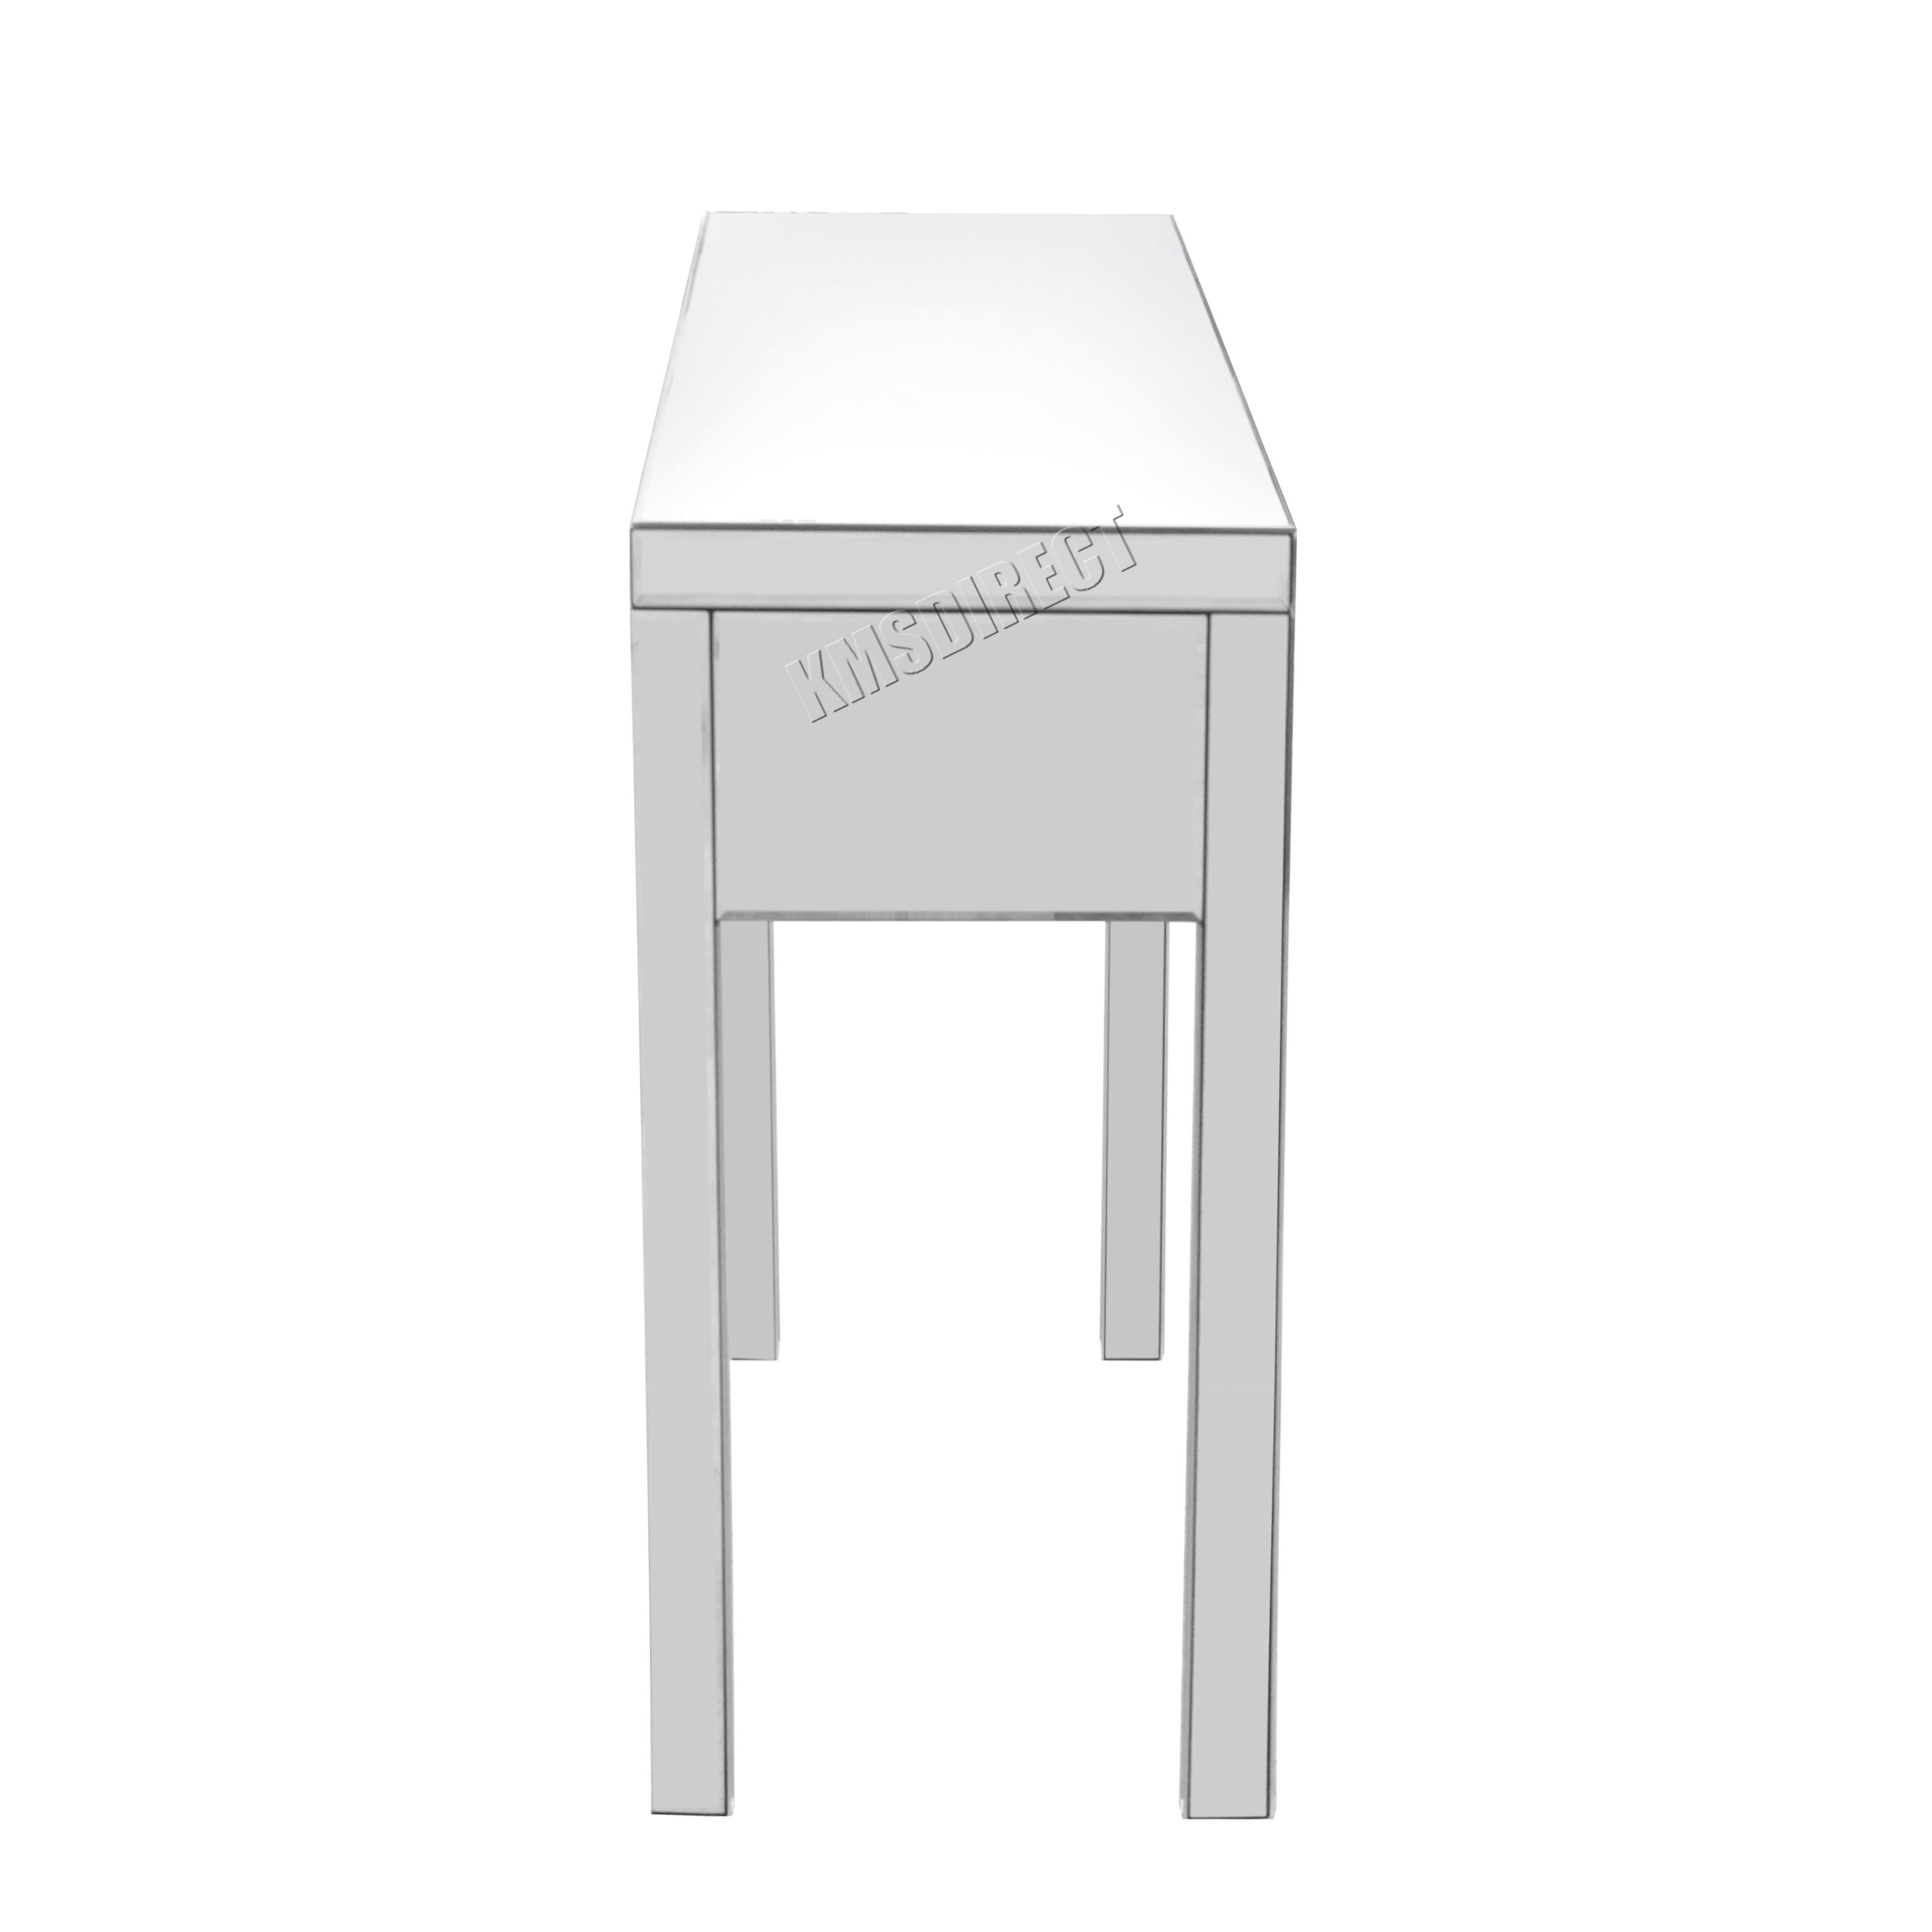 Mirrored Furniture Foxhunter Mirrored Furniture Glass Dressing Table With Drawer